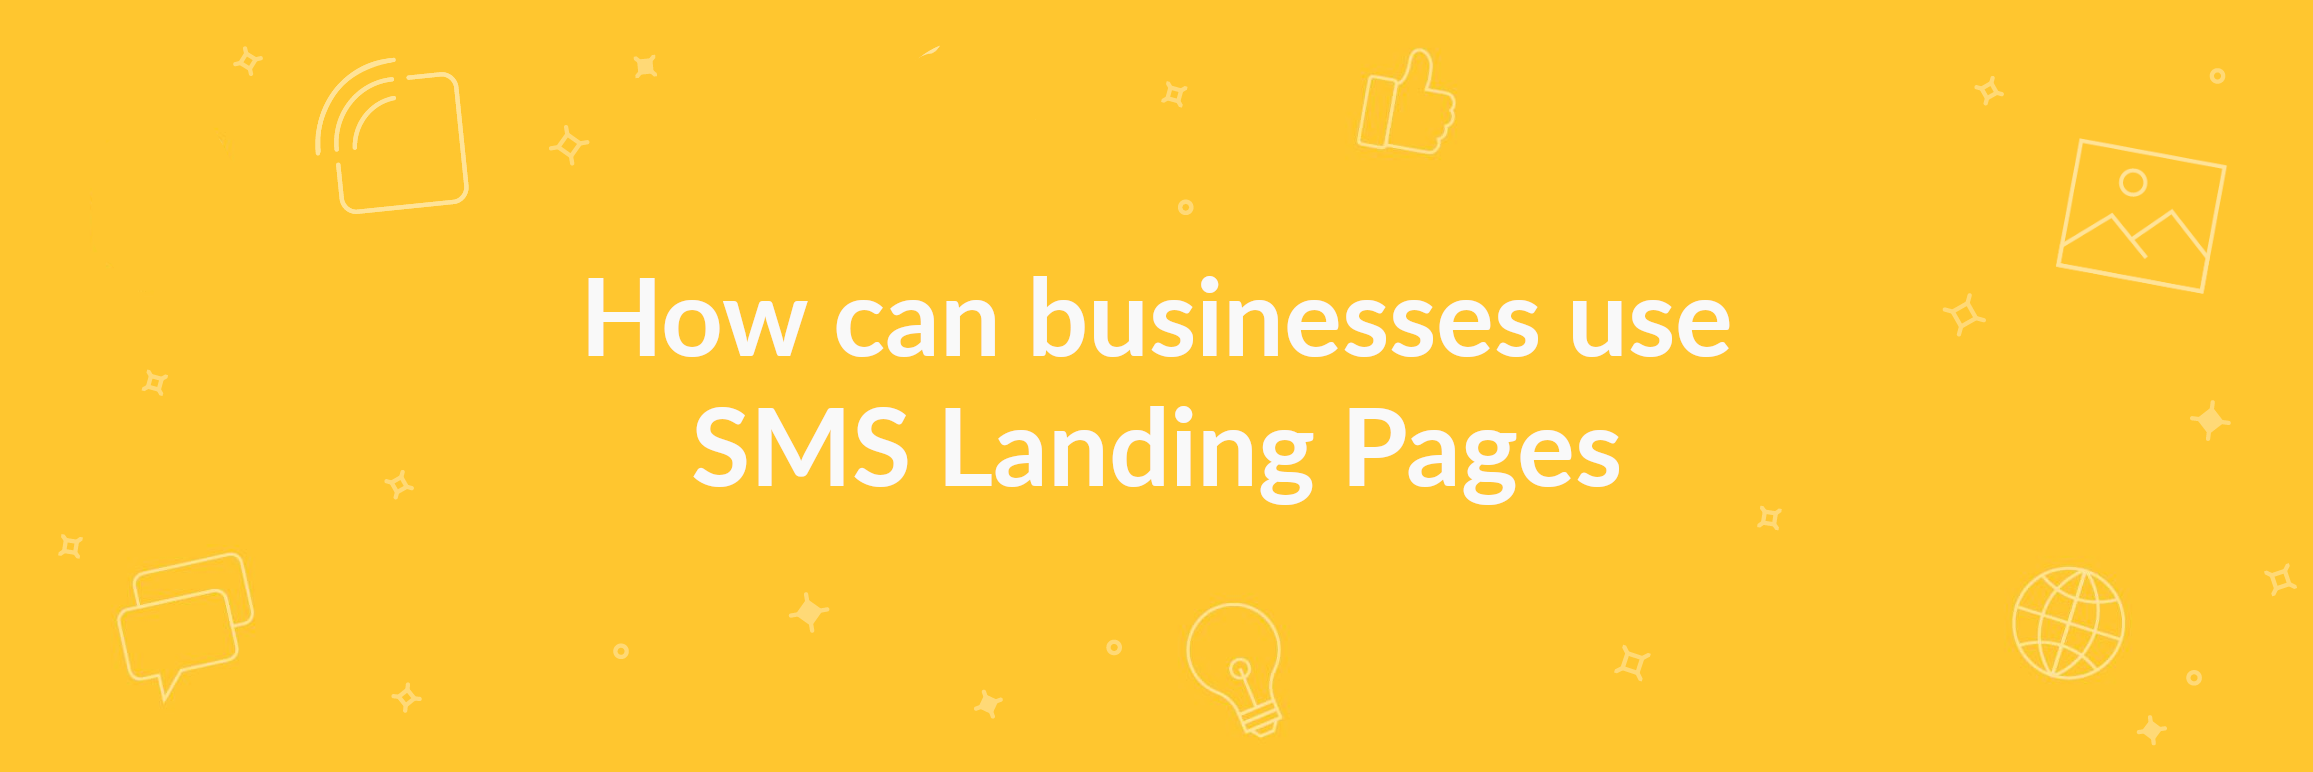 SMS Landing Page banner